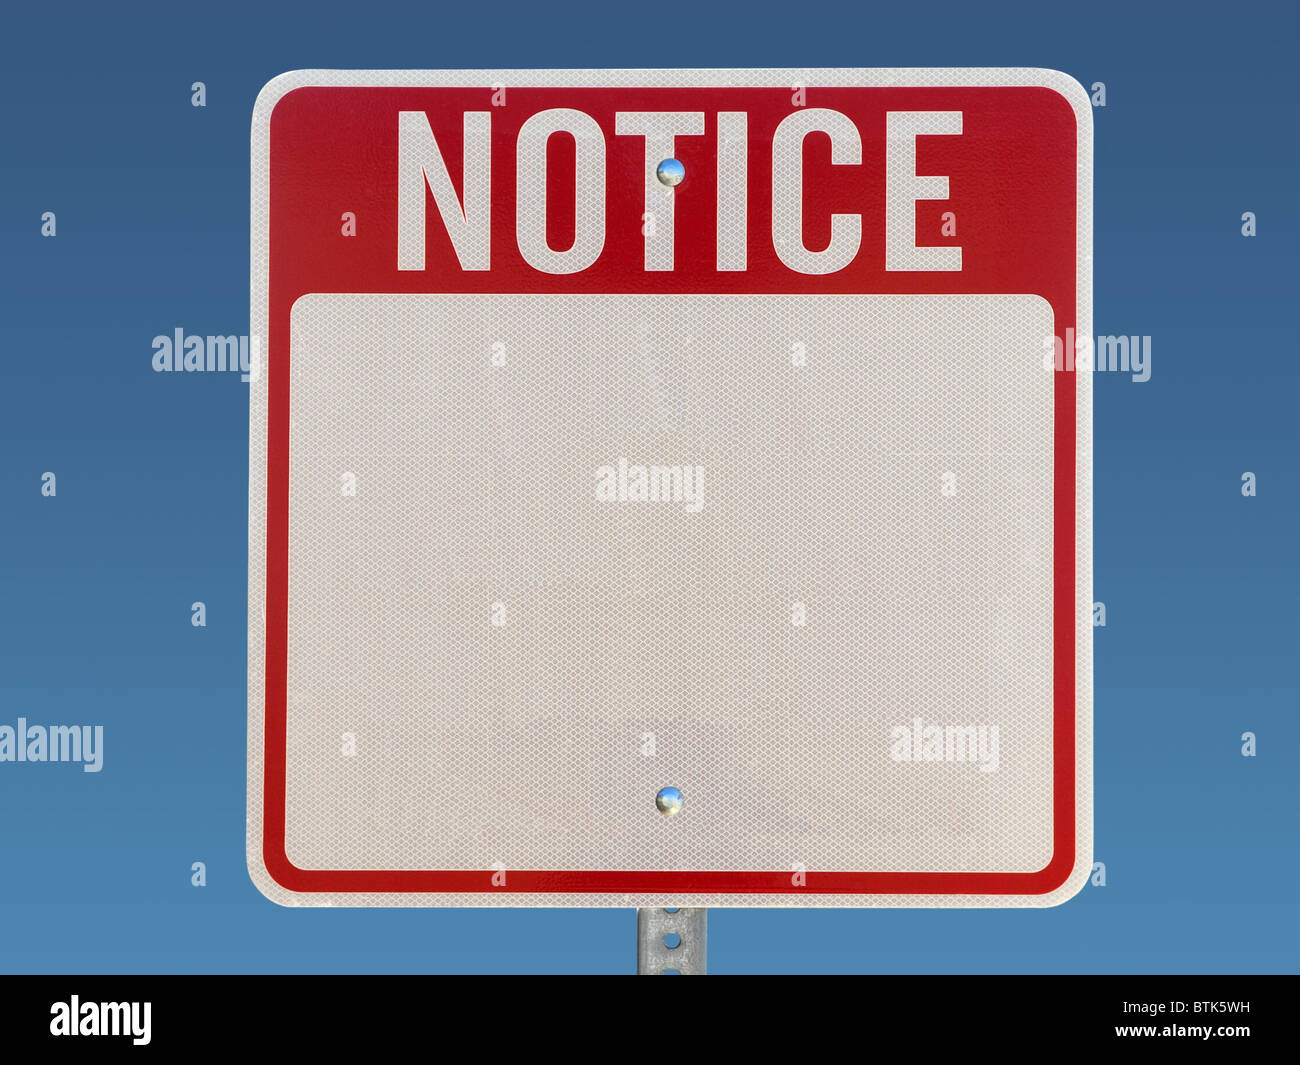 Blank notice sign  Red, white on blue Stock Photo: 32383837